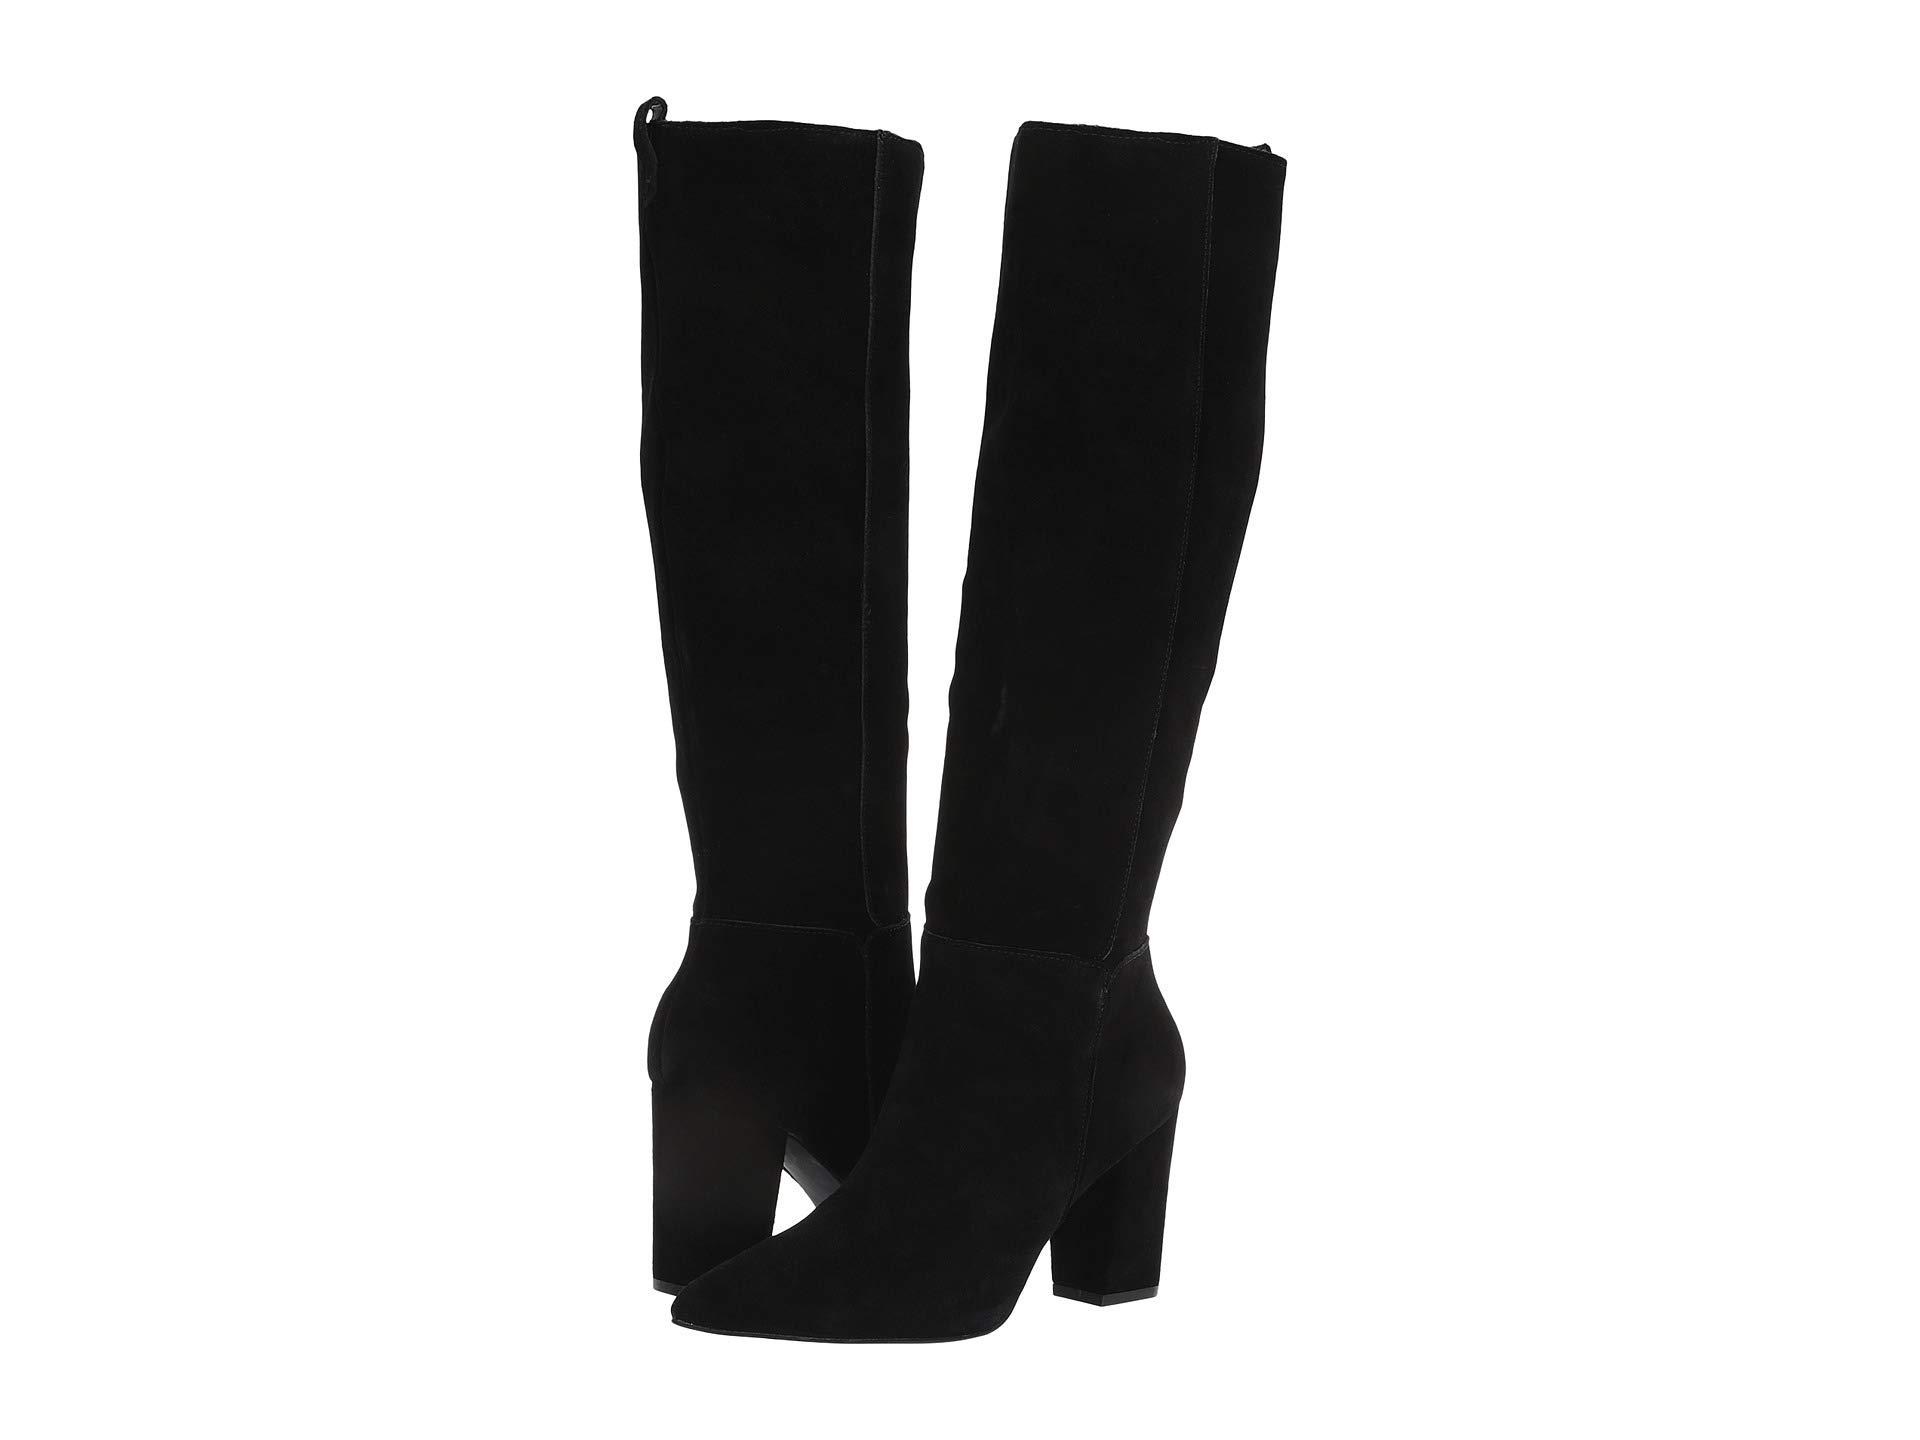 Сапоги Steve Madden Raddle To the Knee Boot Black, 39 (246 мм)